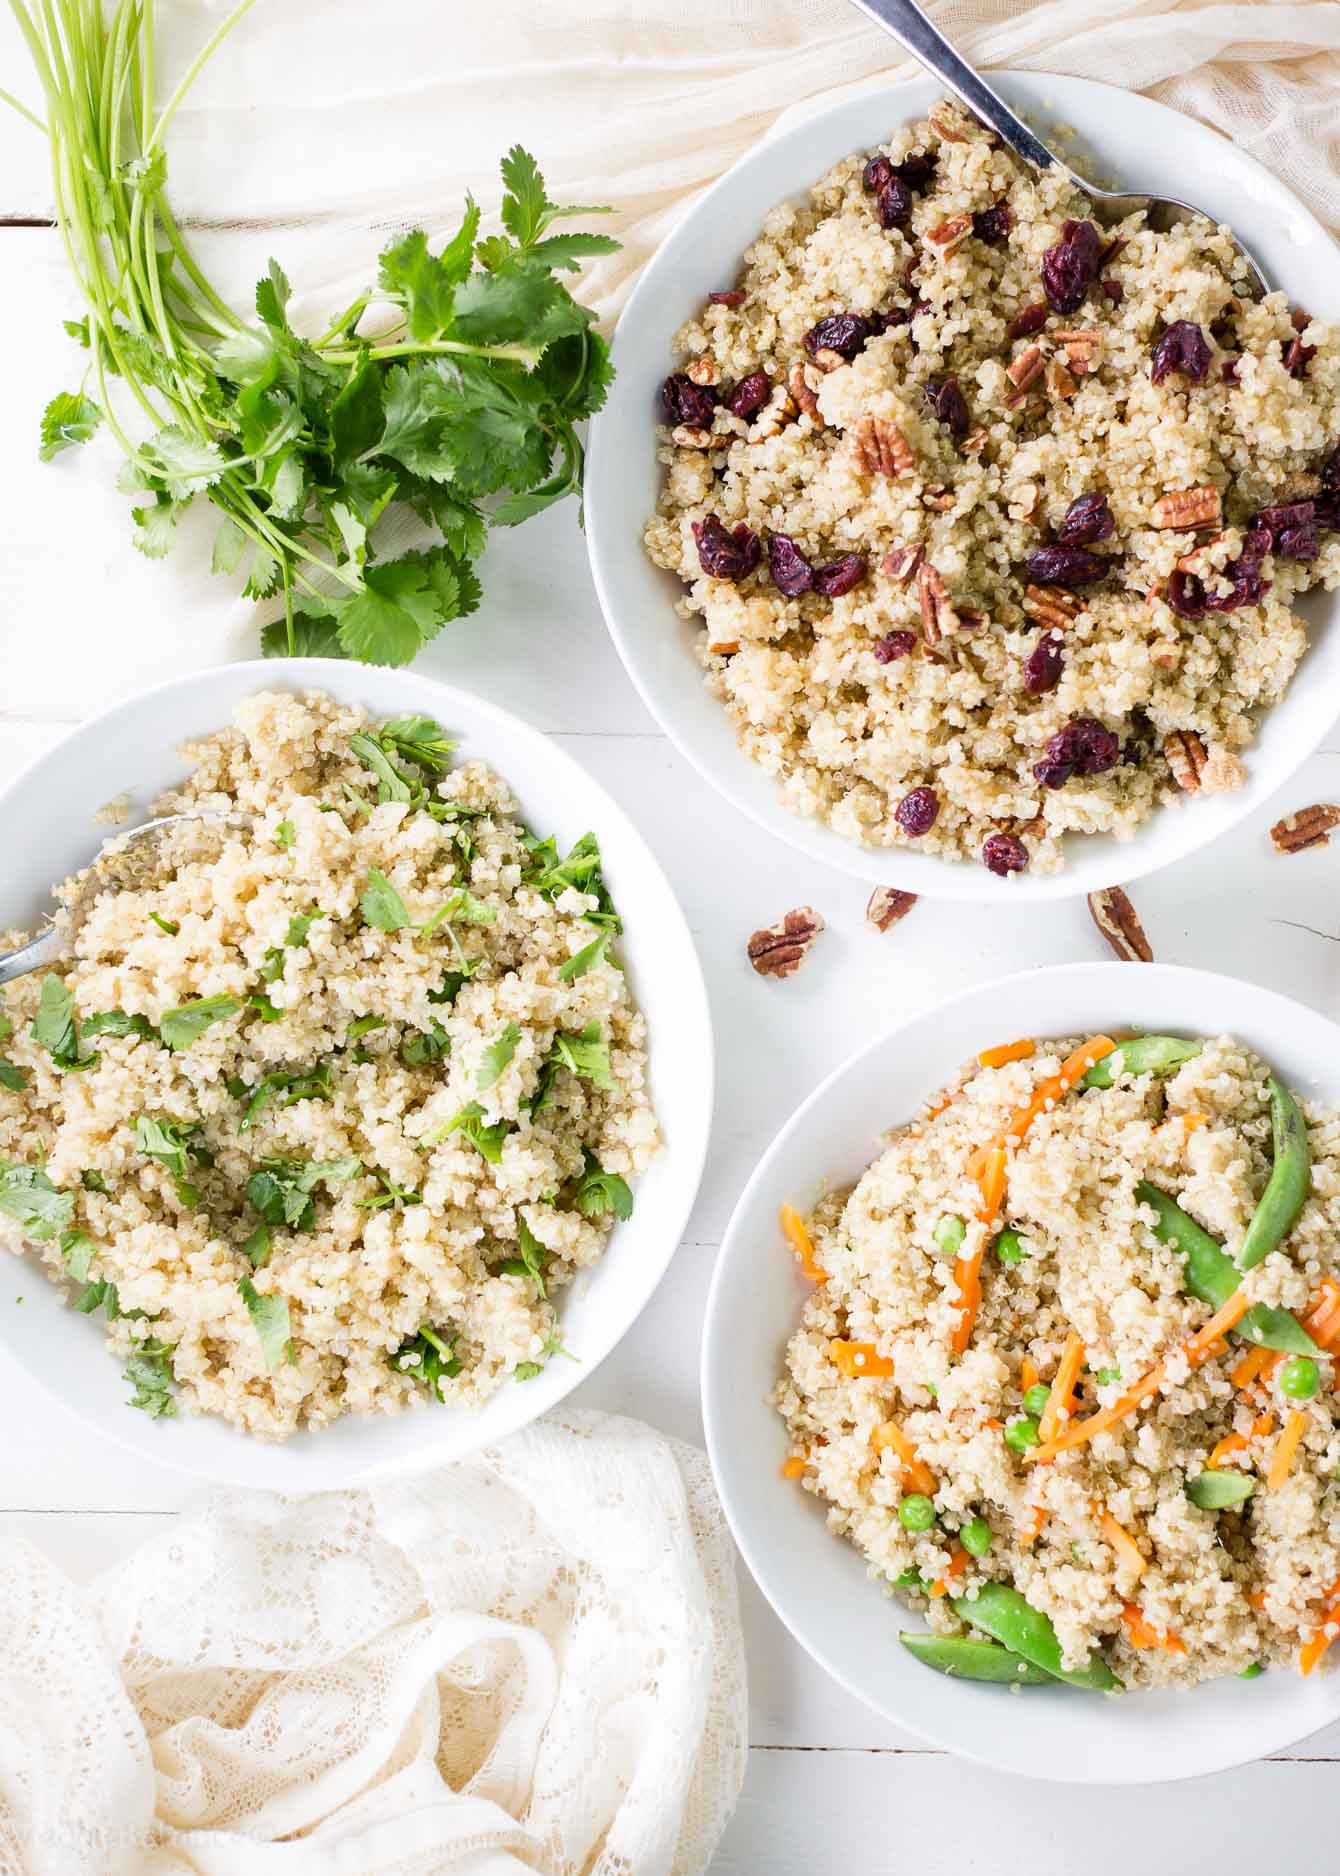 How to Make the Best Quinoa